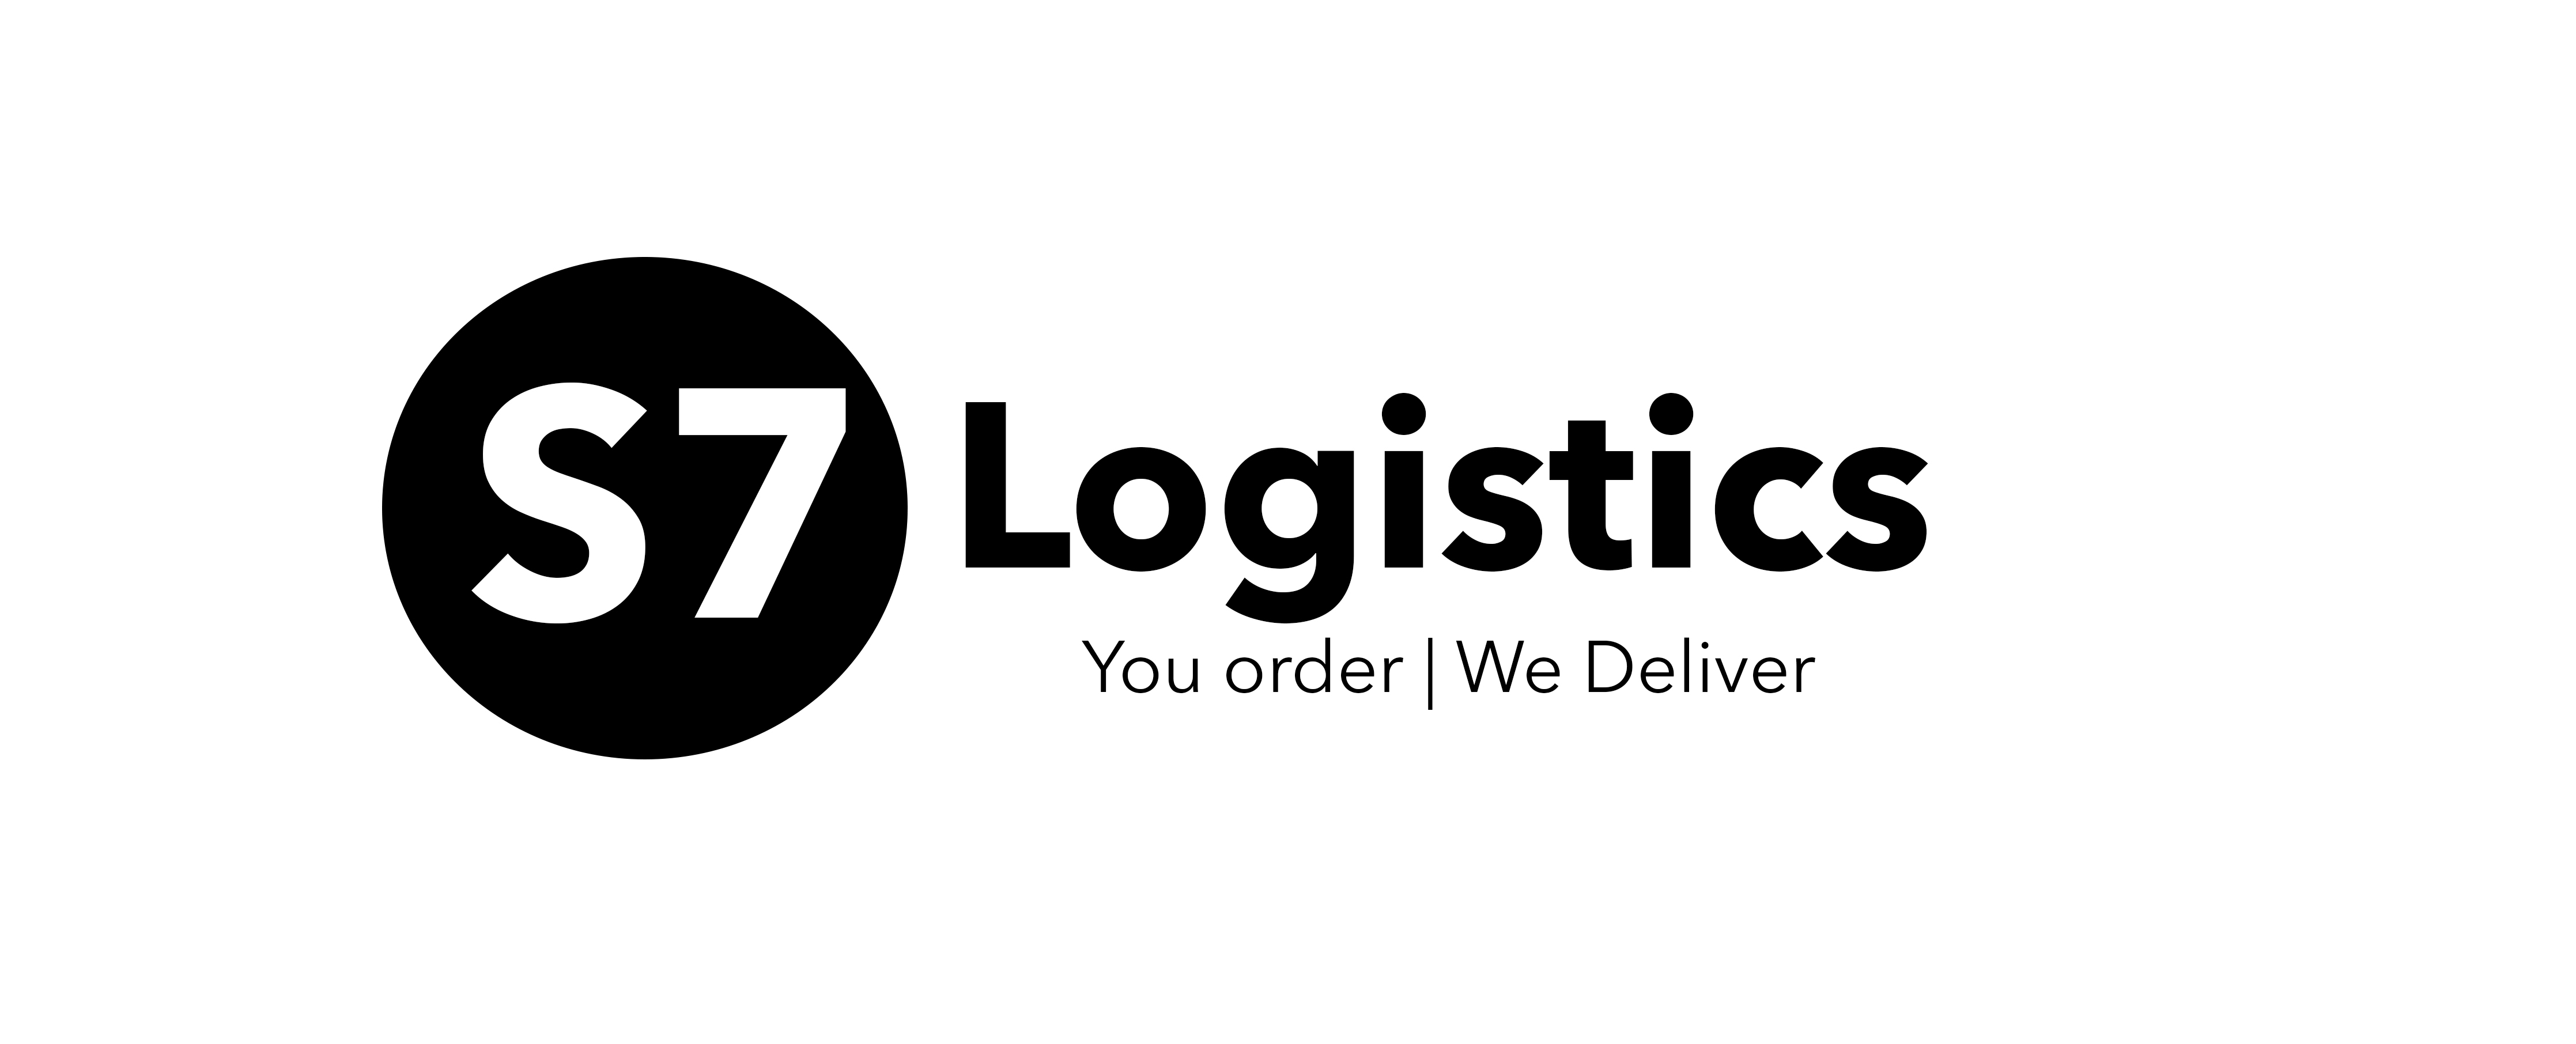 Read S7 Logistics Reviews